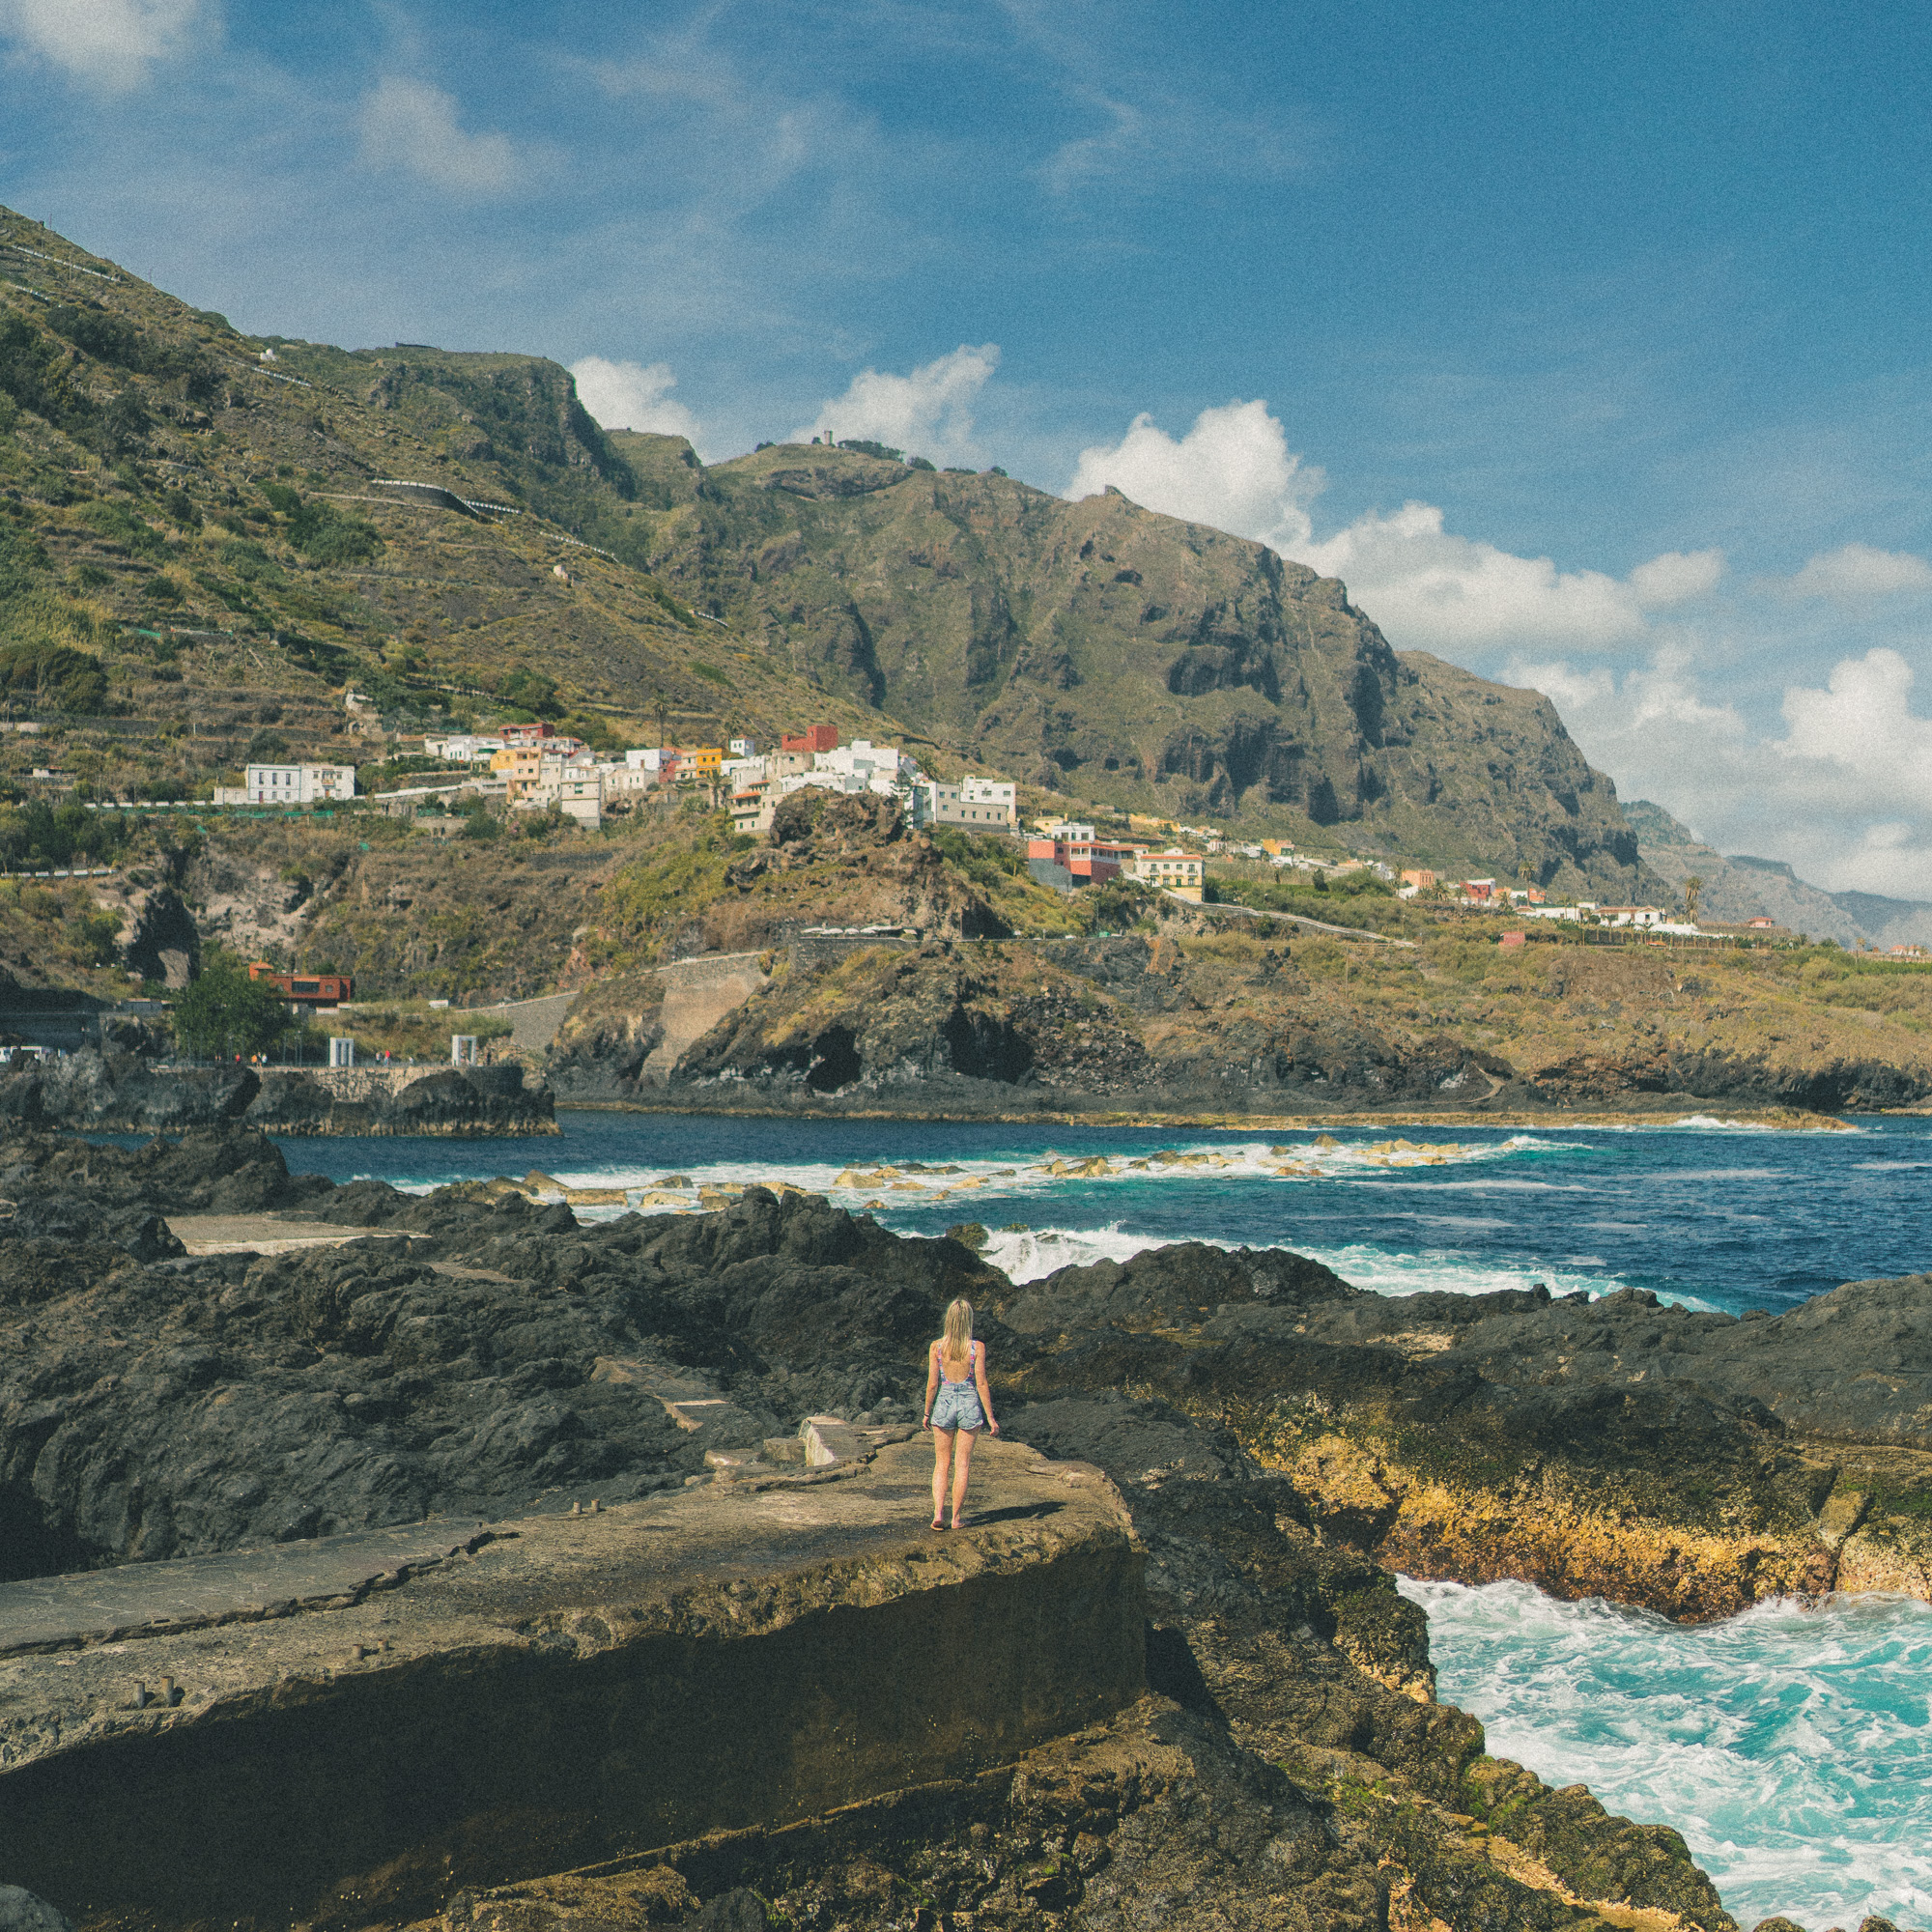 Natural pools and views of Garachico, Tenerife, Canary Islands, Spain